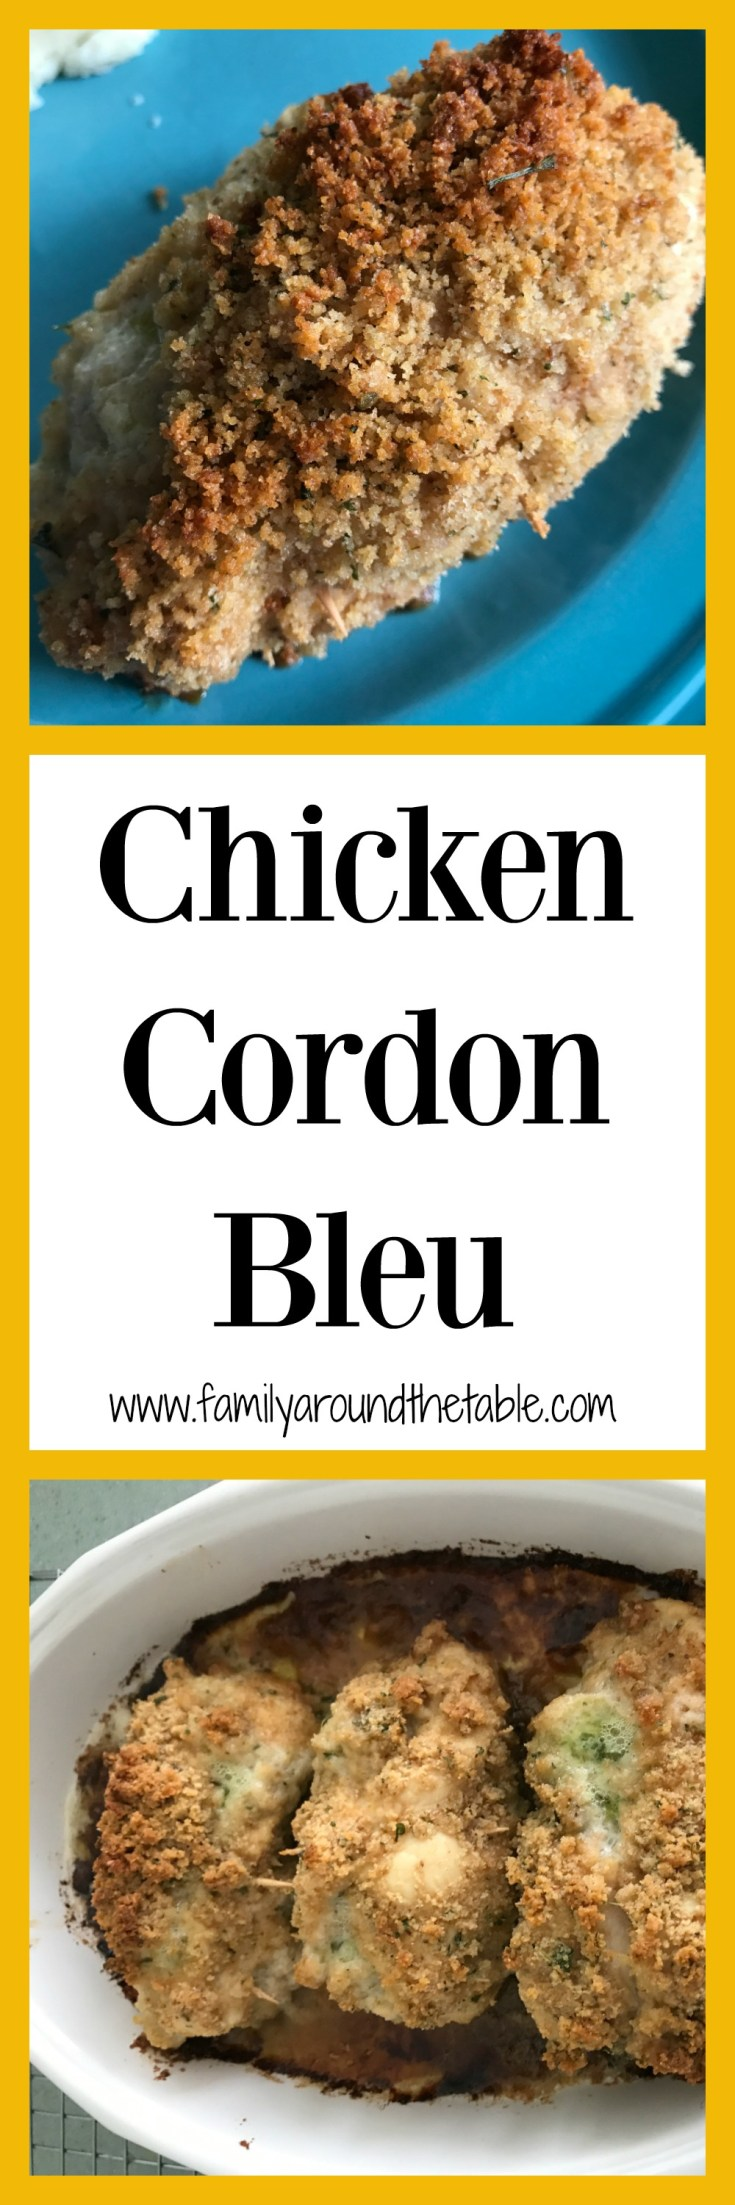 Chicken Cordon Bleu is pure comfort food.